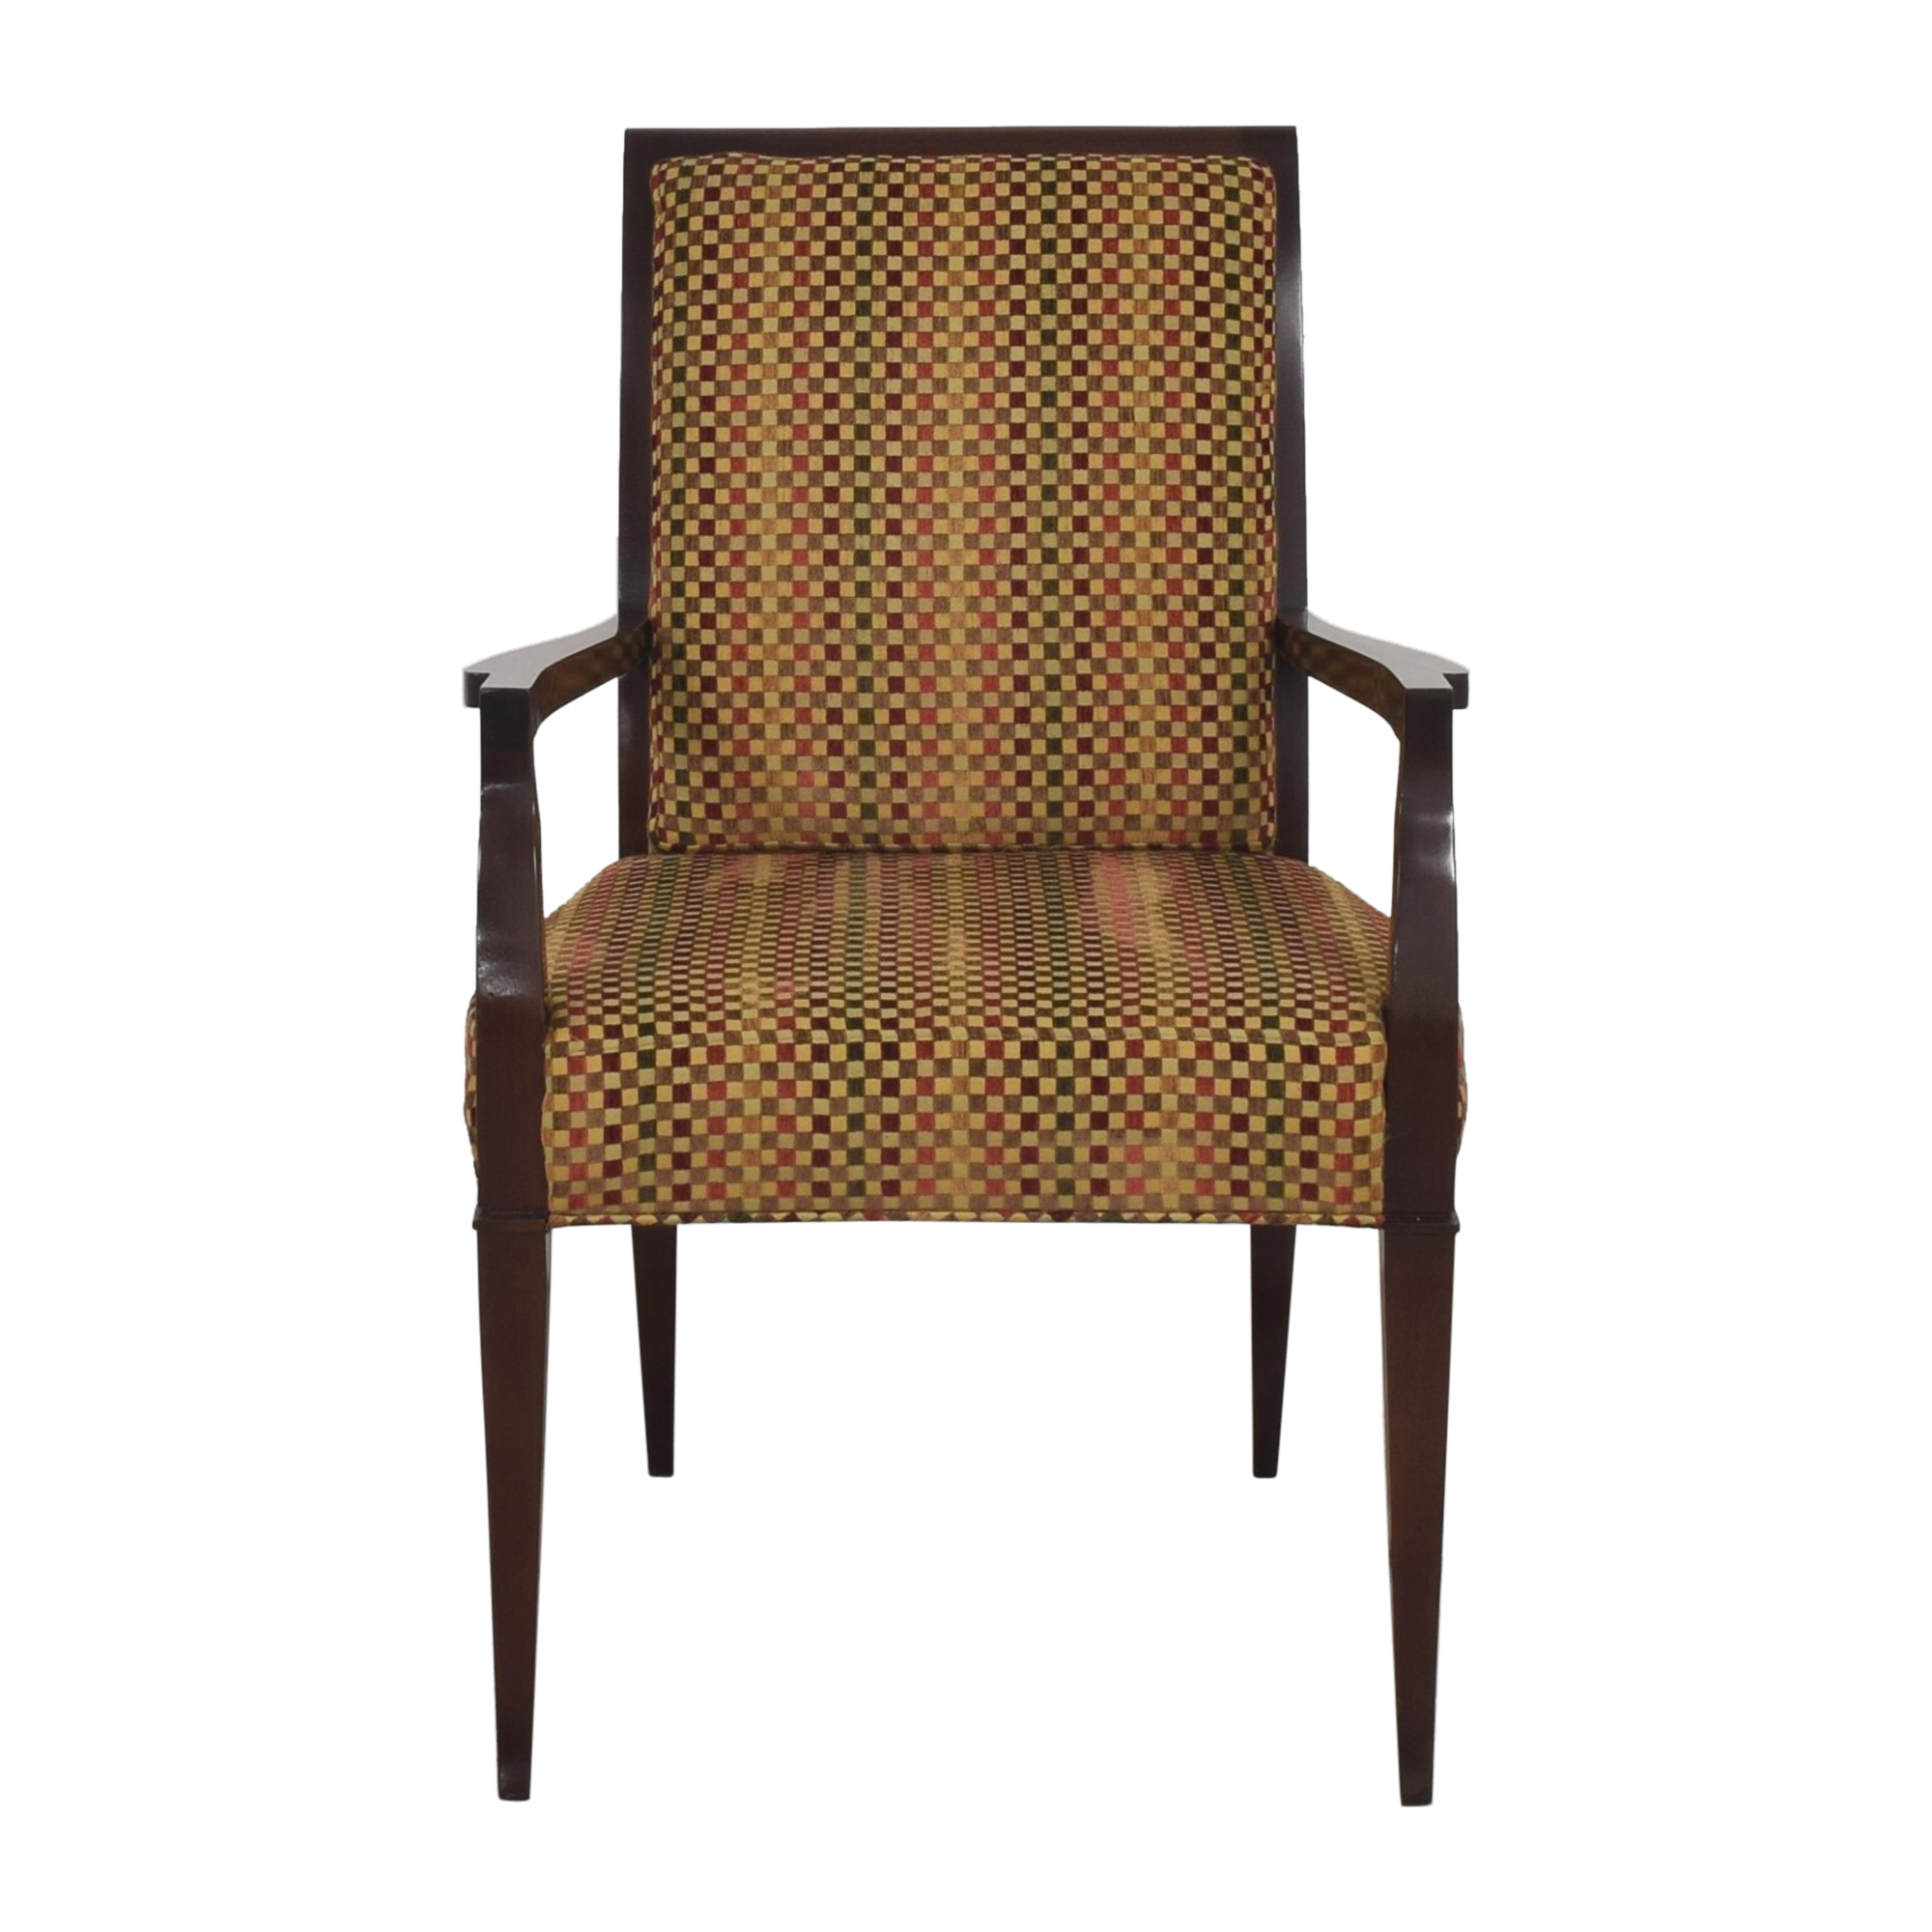 Councill Councill Upholstered Chair price